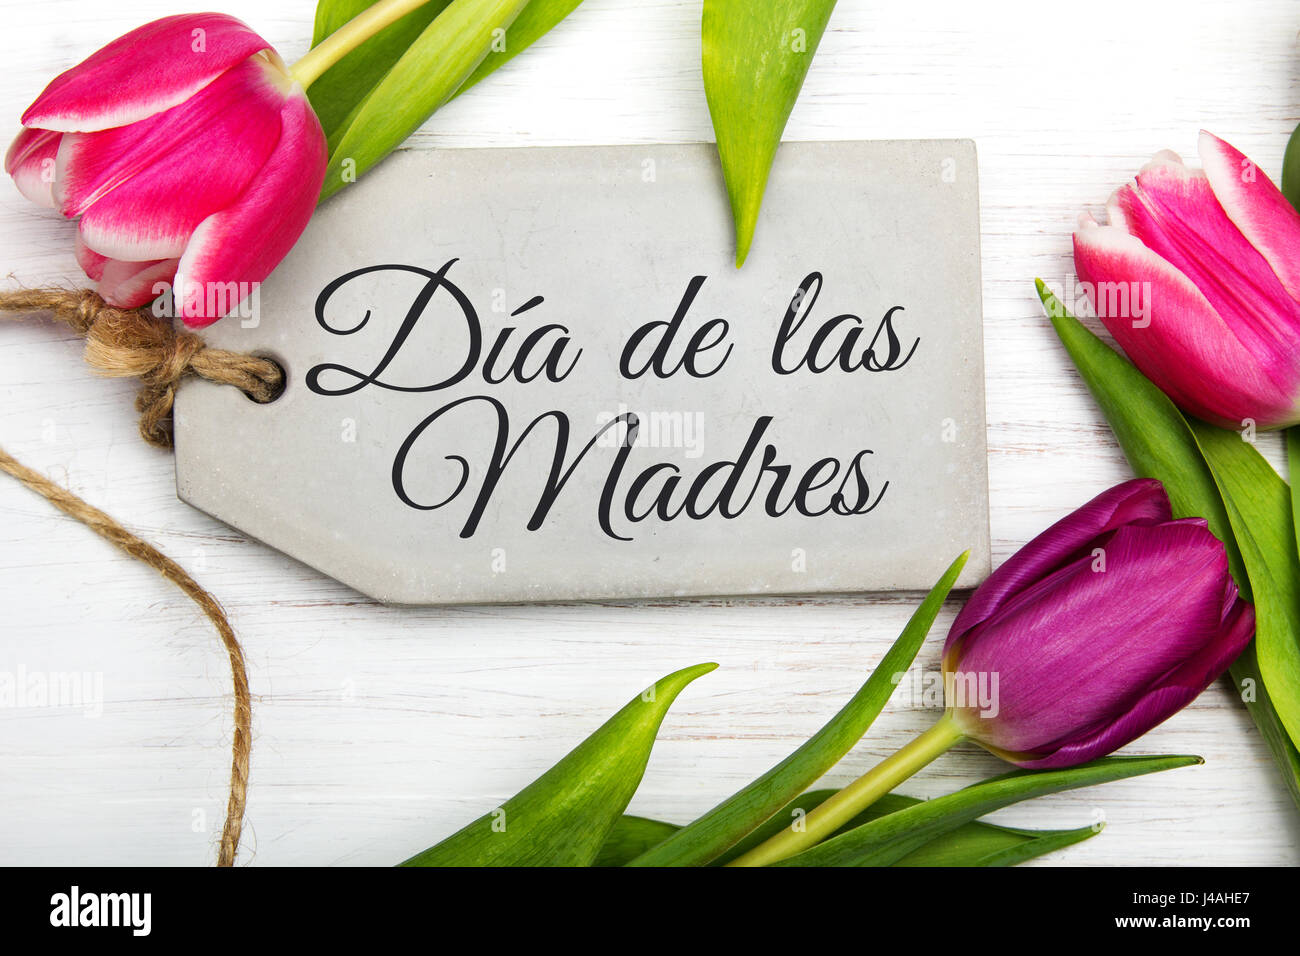 Mothers day card with spanish words happy mothers day and mothers day card with spanish words happy mothers day and tulip flowers frame on white wooden background kristyandbryce Choice Image